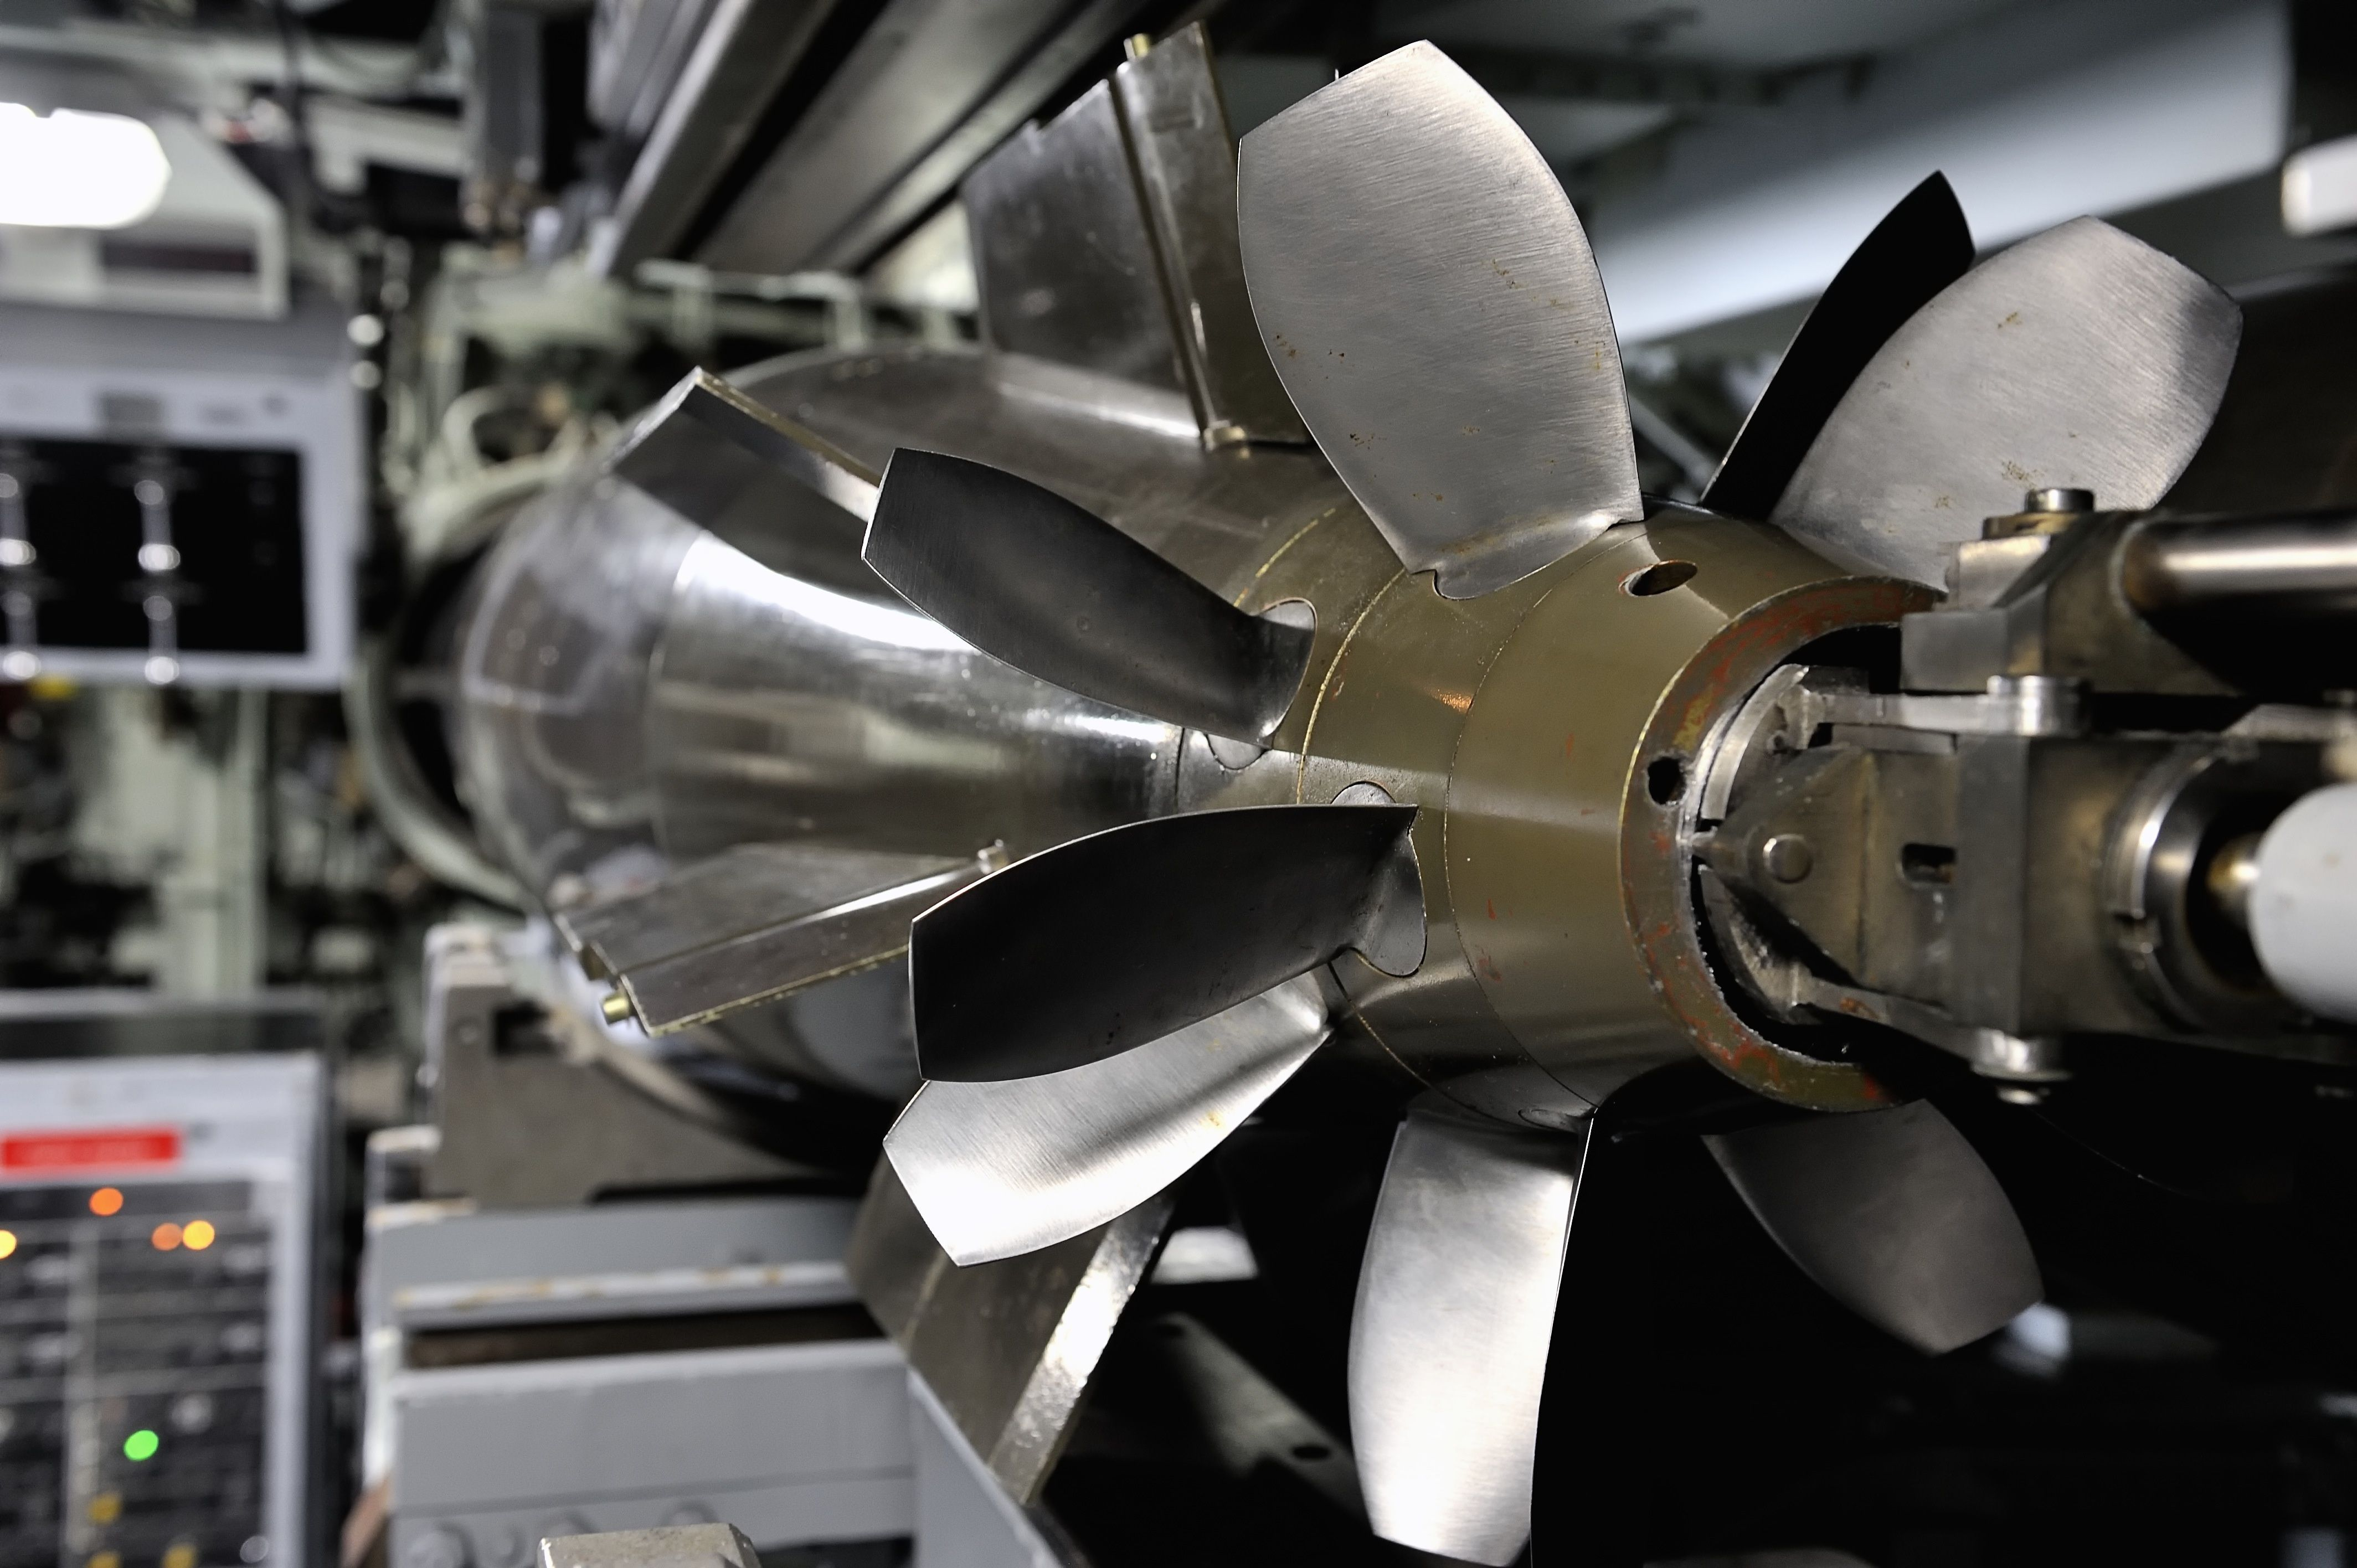 Saft will supply silver oxide-aluminium (AgO-Al) electrochemical stacks for PB-61 powering heavyweight F21 torpedoes (Photo: Business Wire)